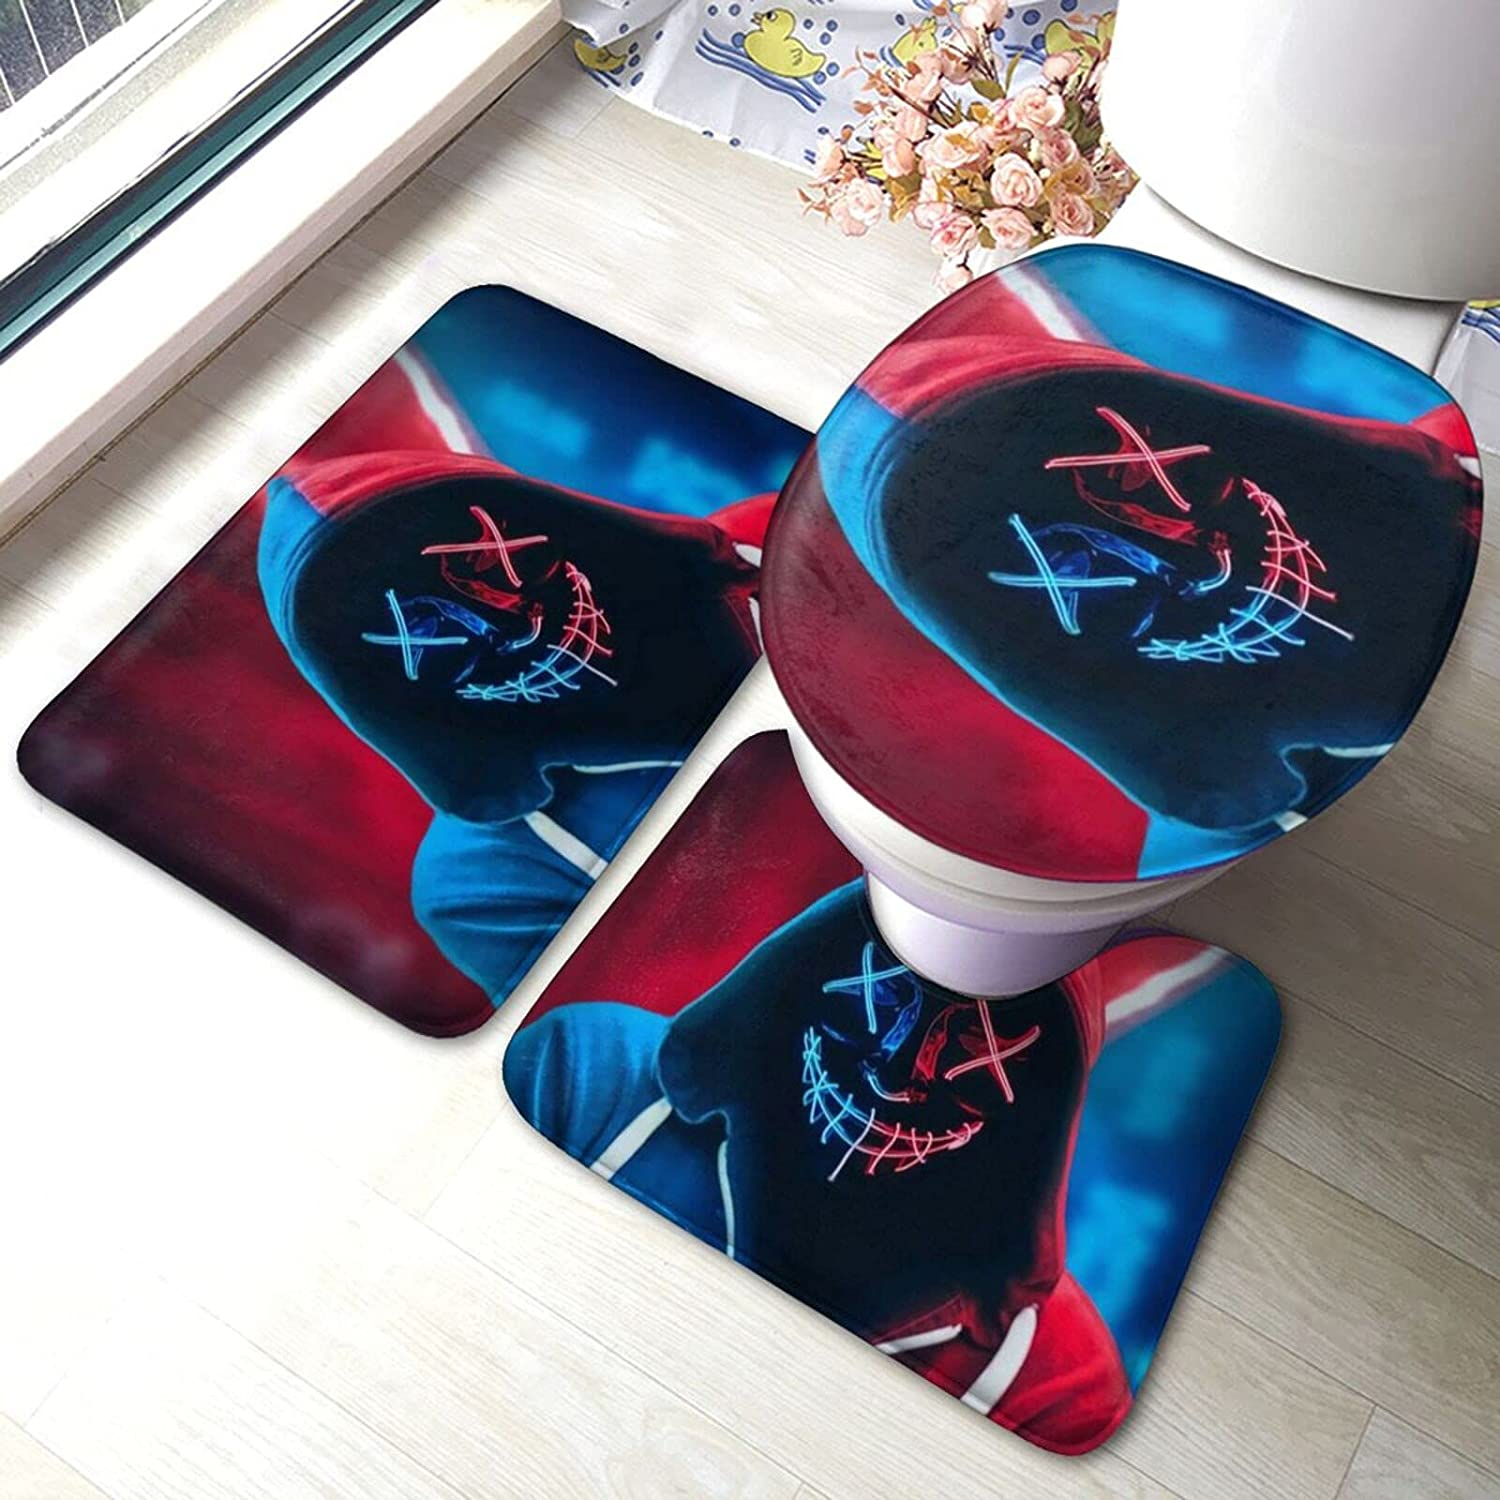 Neon Boy Bath Mat 3 Piece To Pads Contour Popular brand in the world + Set Anti-Skid Beauty products